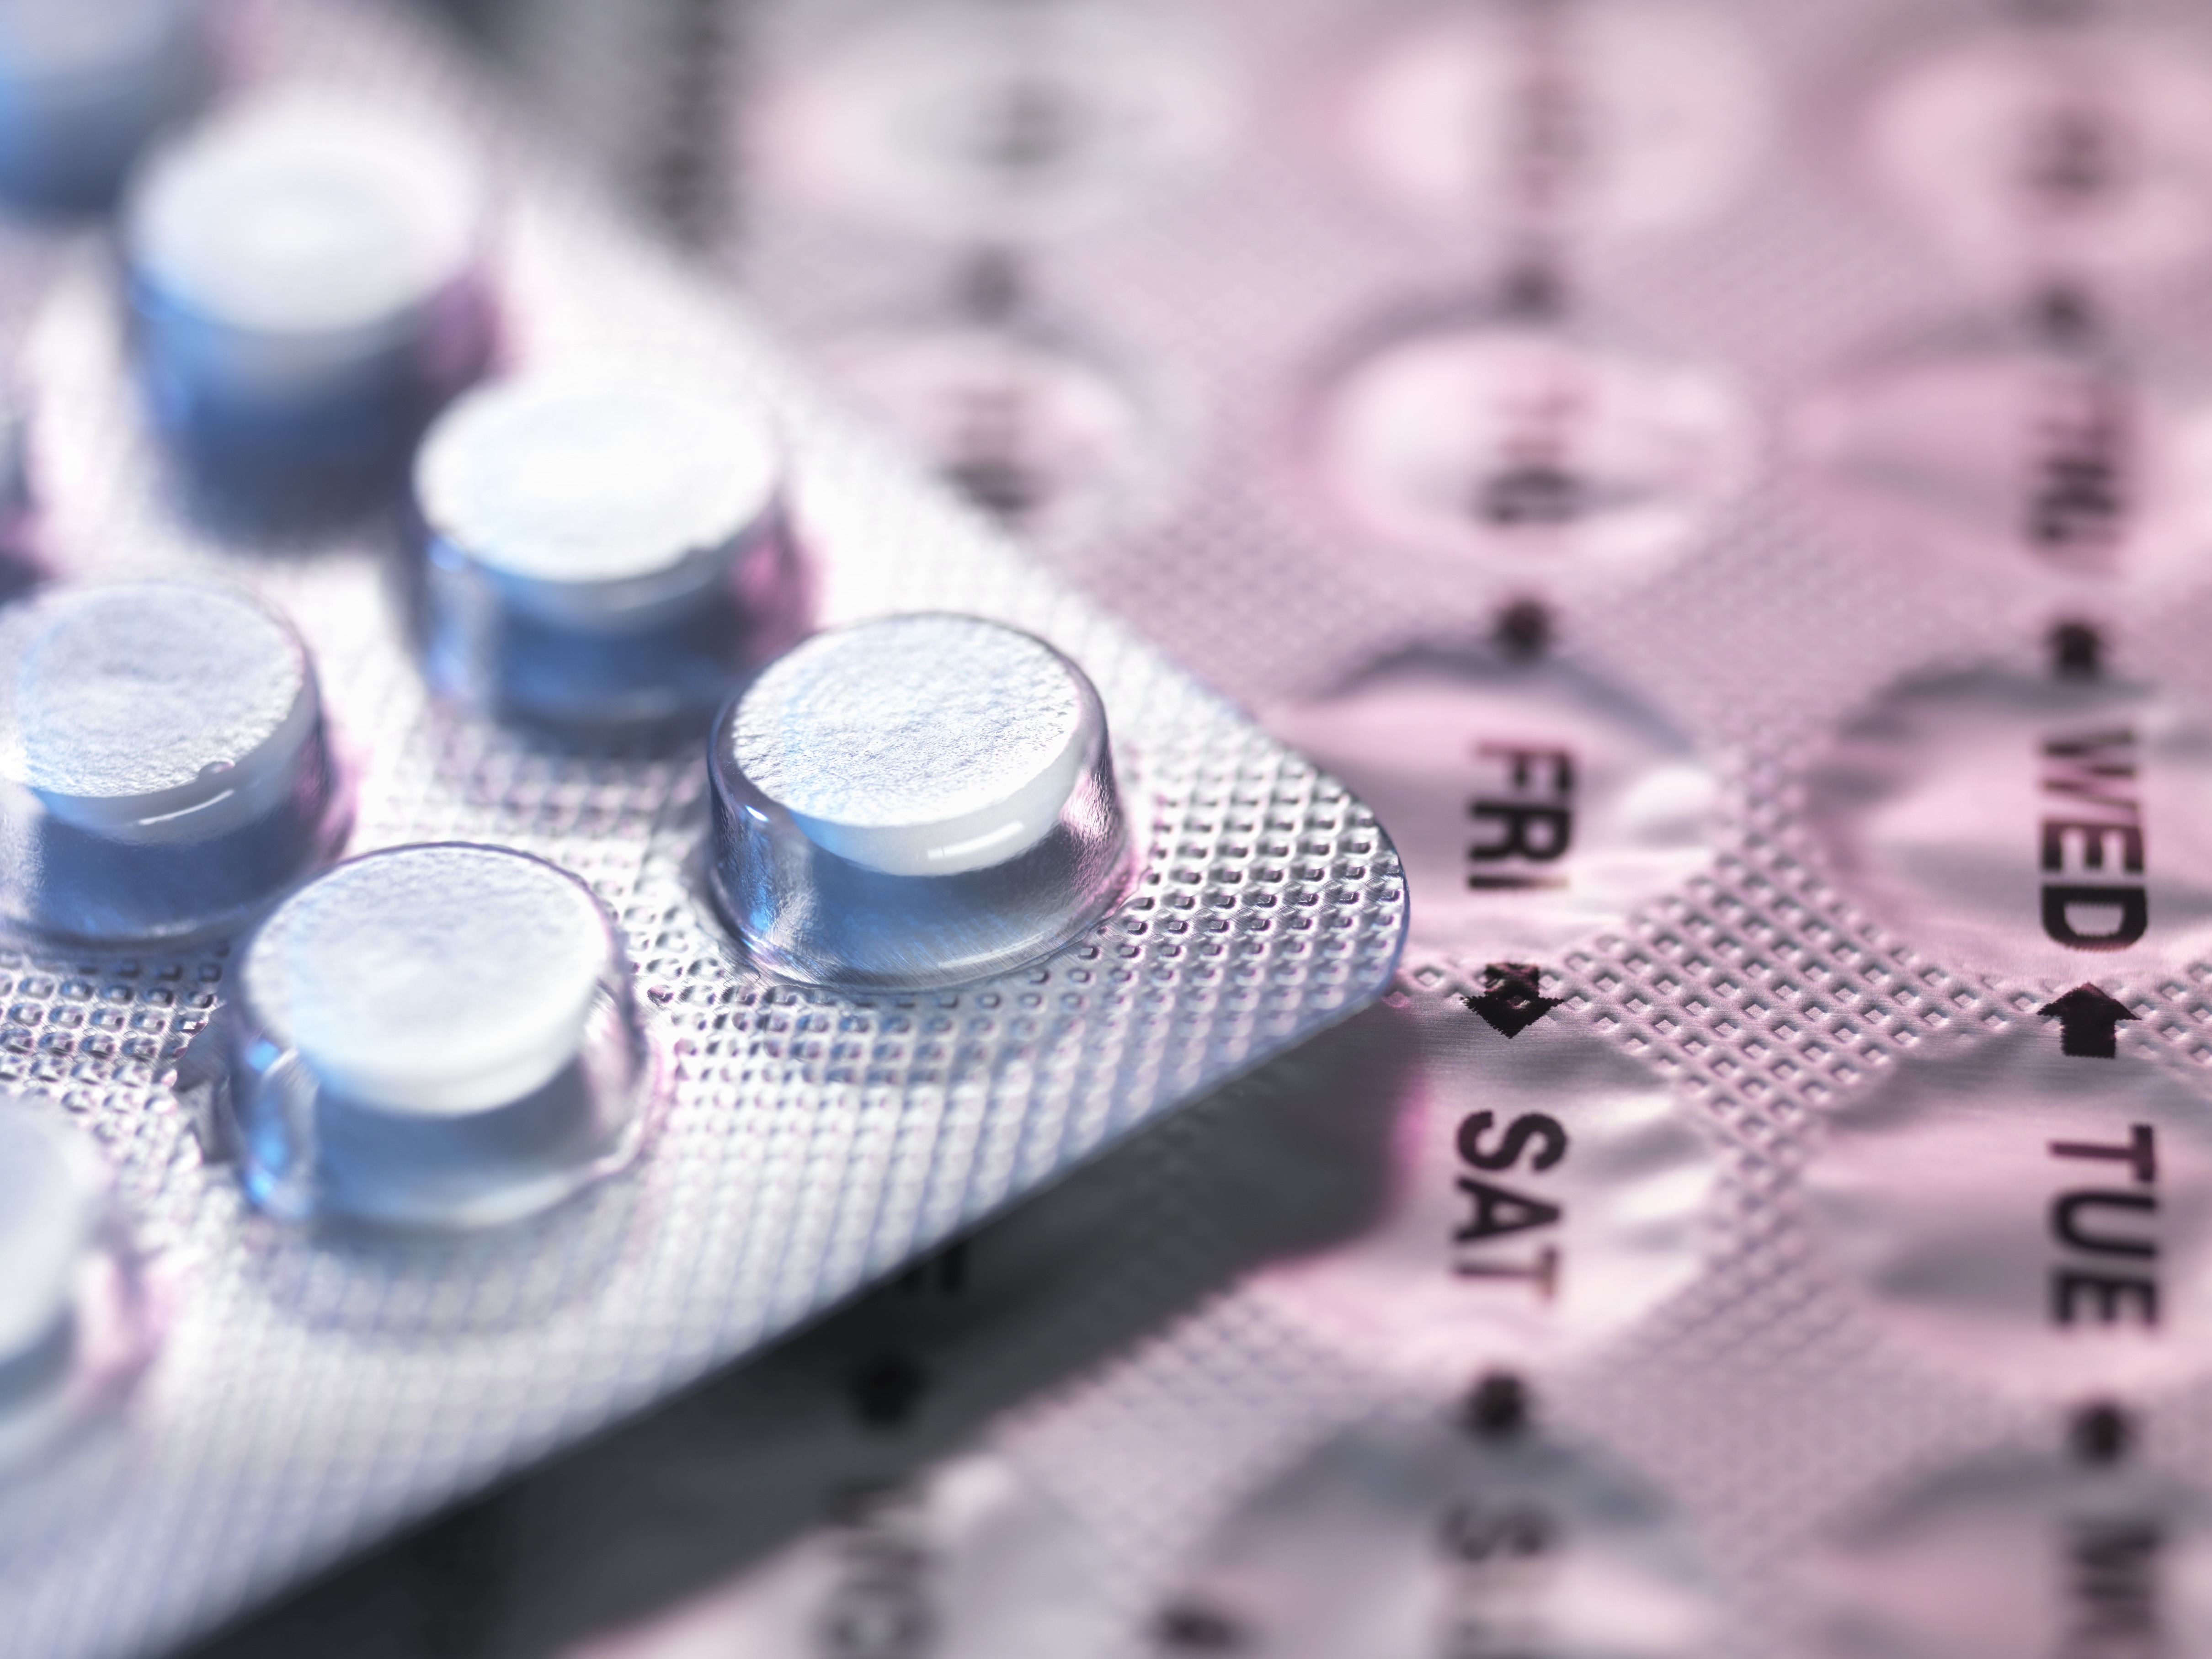 Birth Control Pills May Help Prevent Some Cancers Time